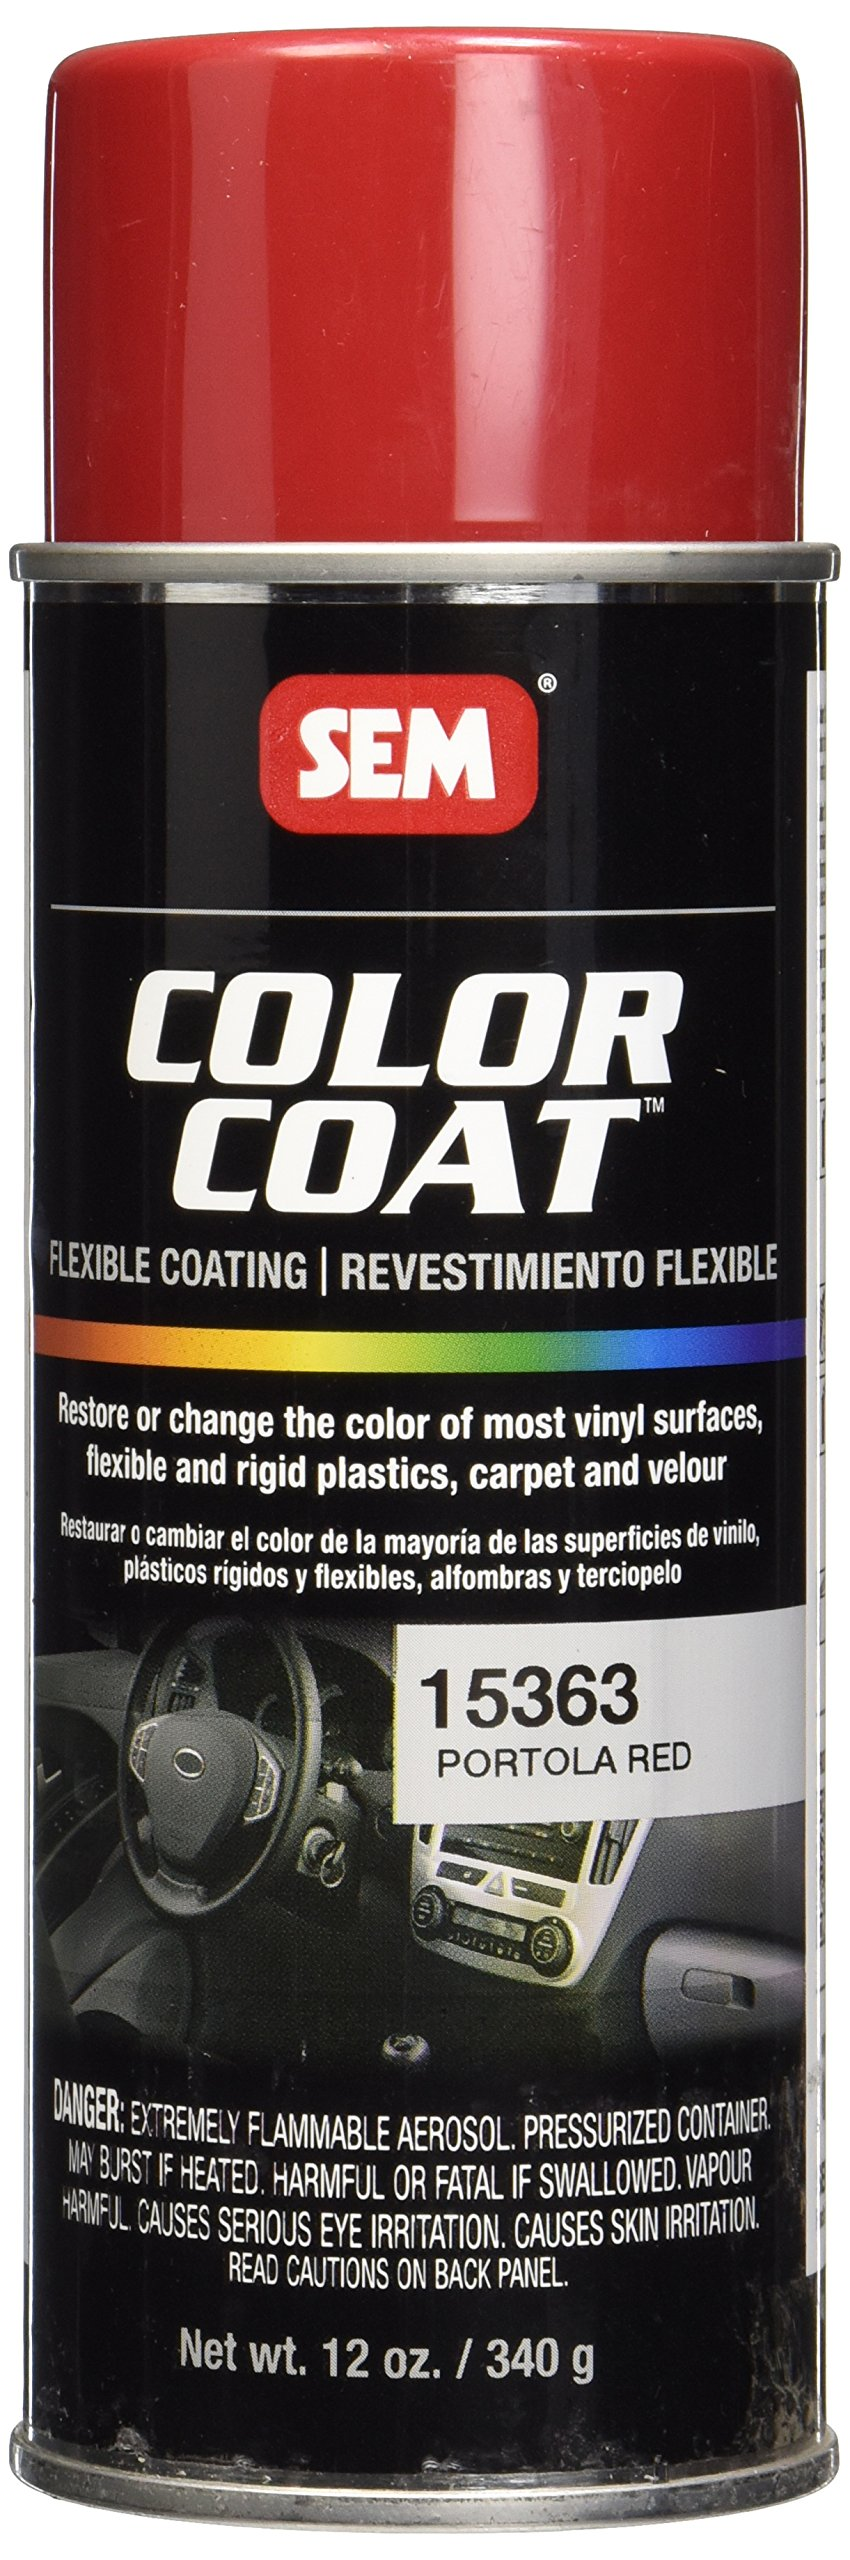 SEM 15363 Portola Red Color Coat - 12 fl. oz.